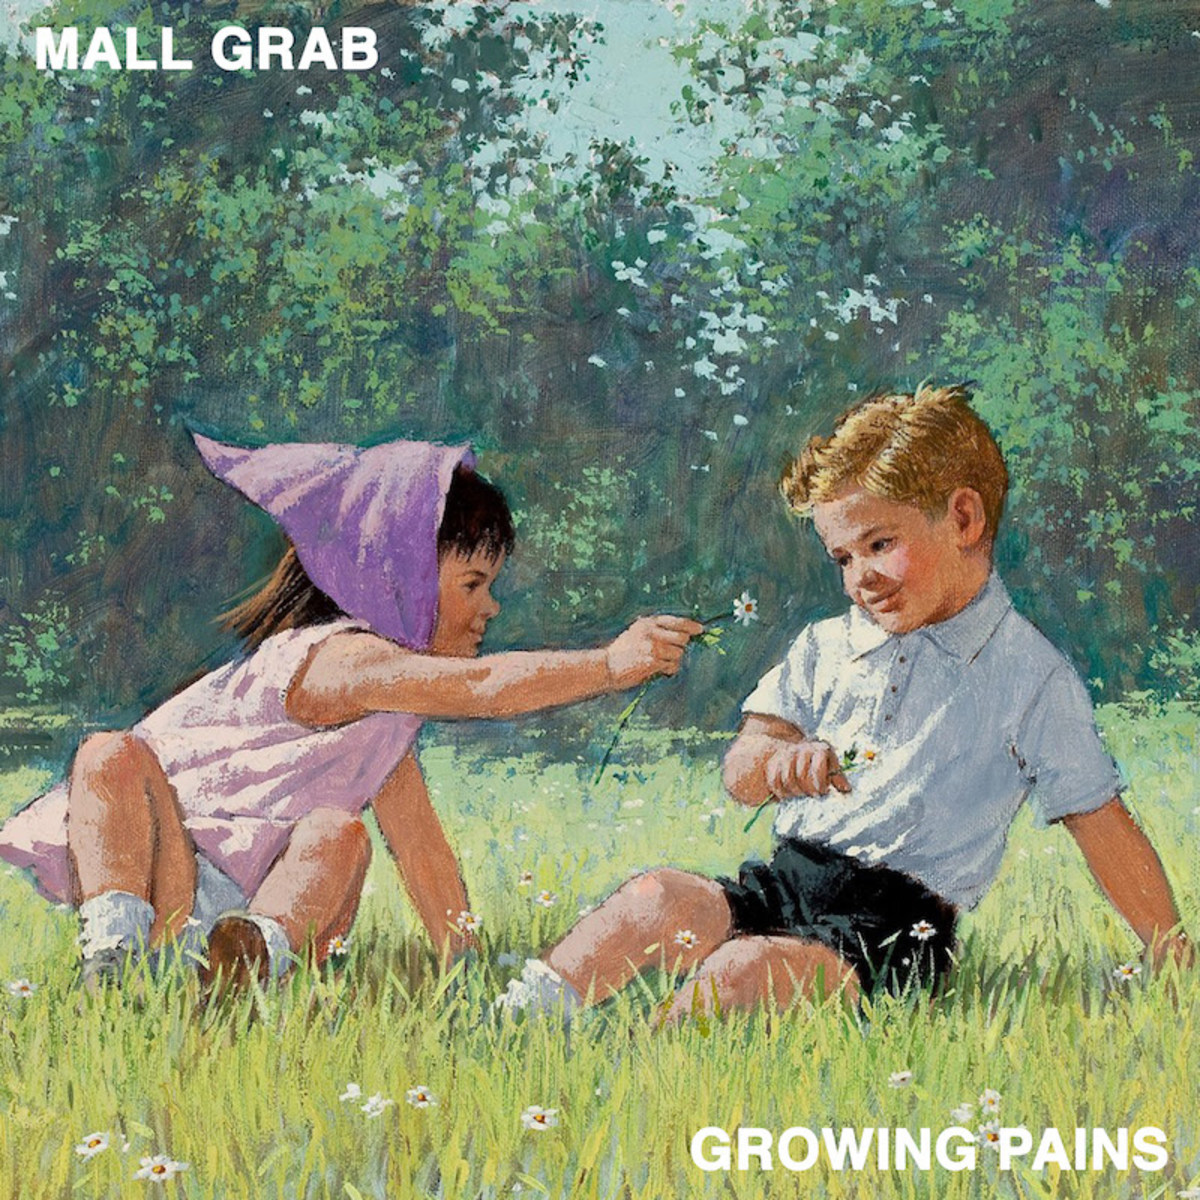 Mall Grab Growing Pains